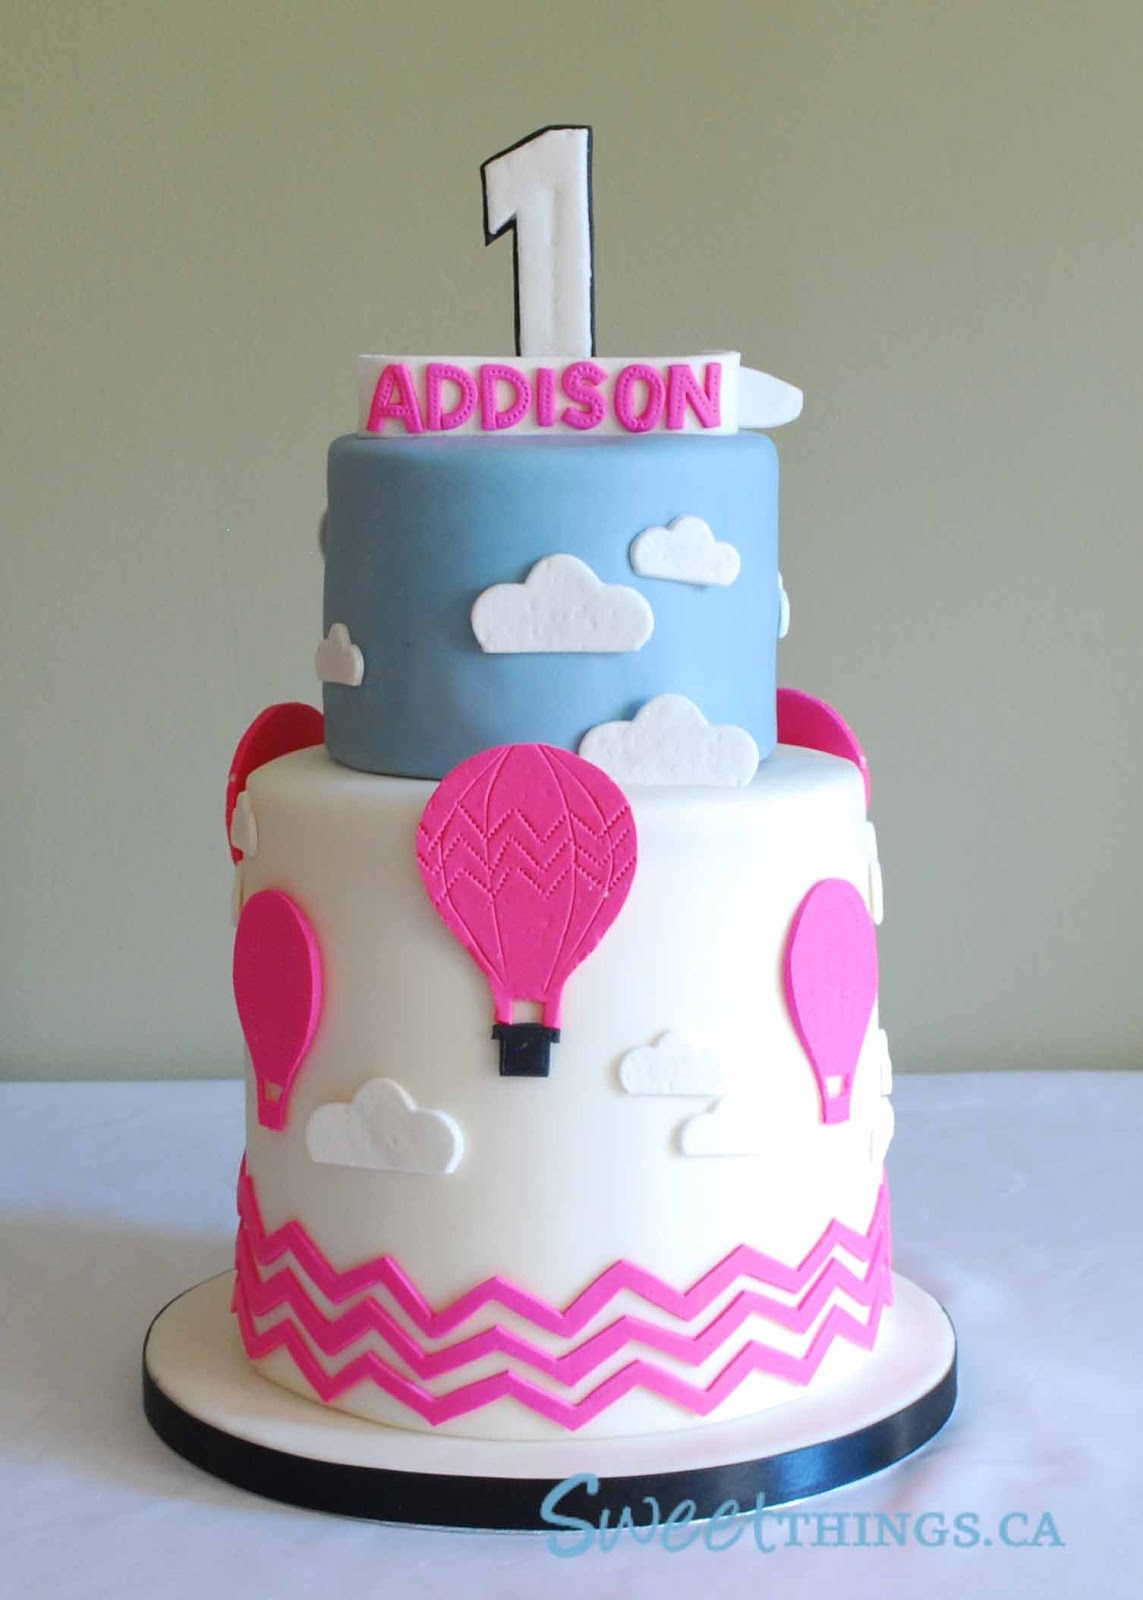 Sweetthings Hot Air Balloon Cake